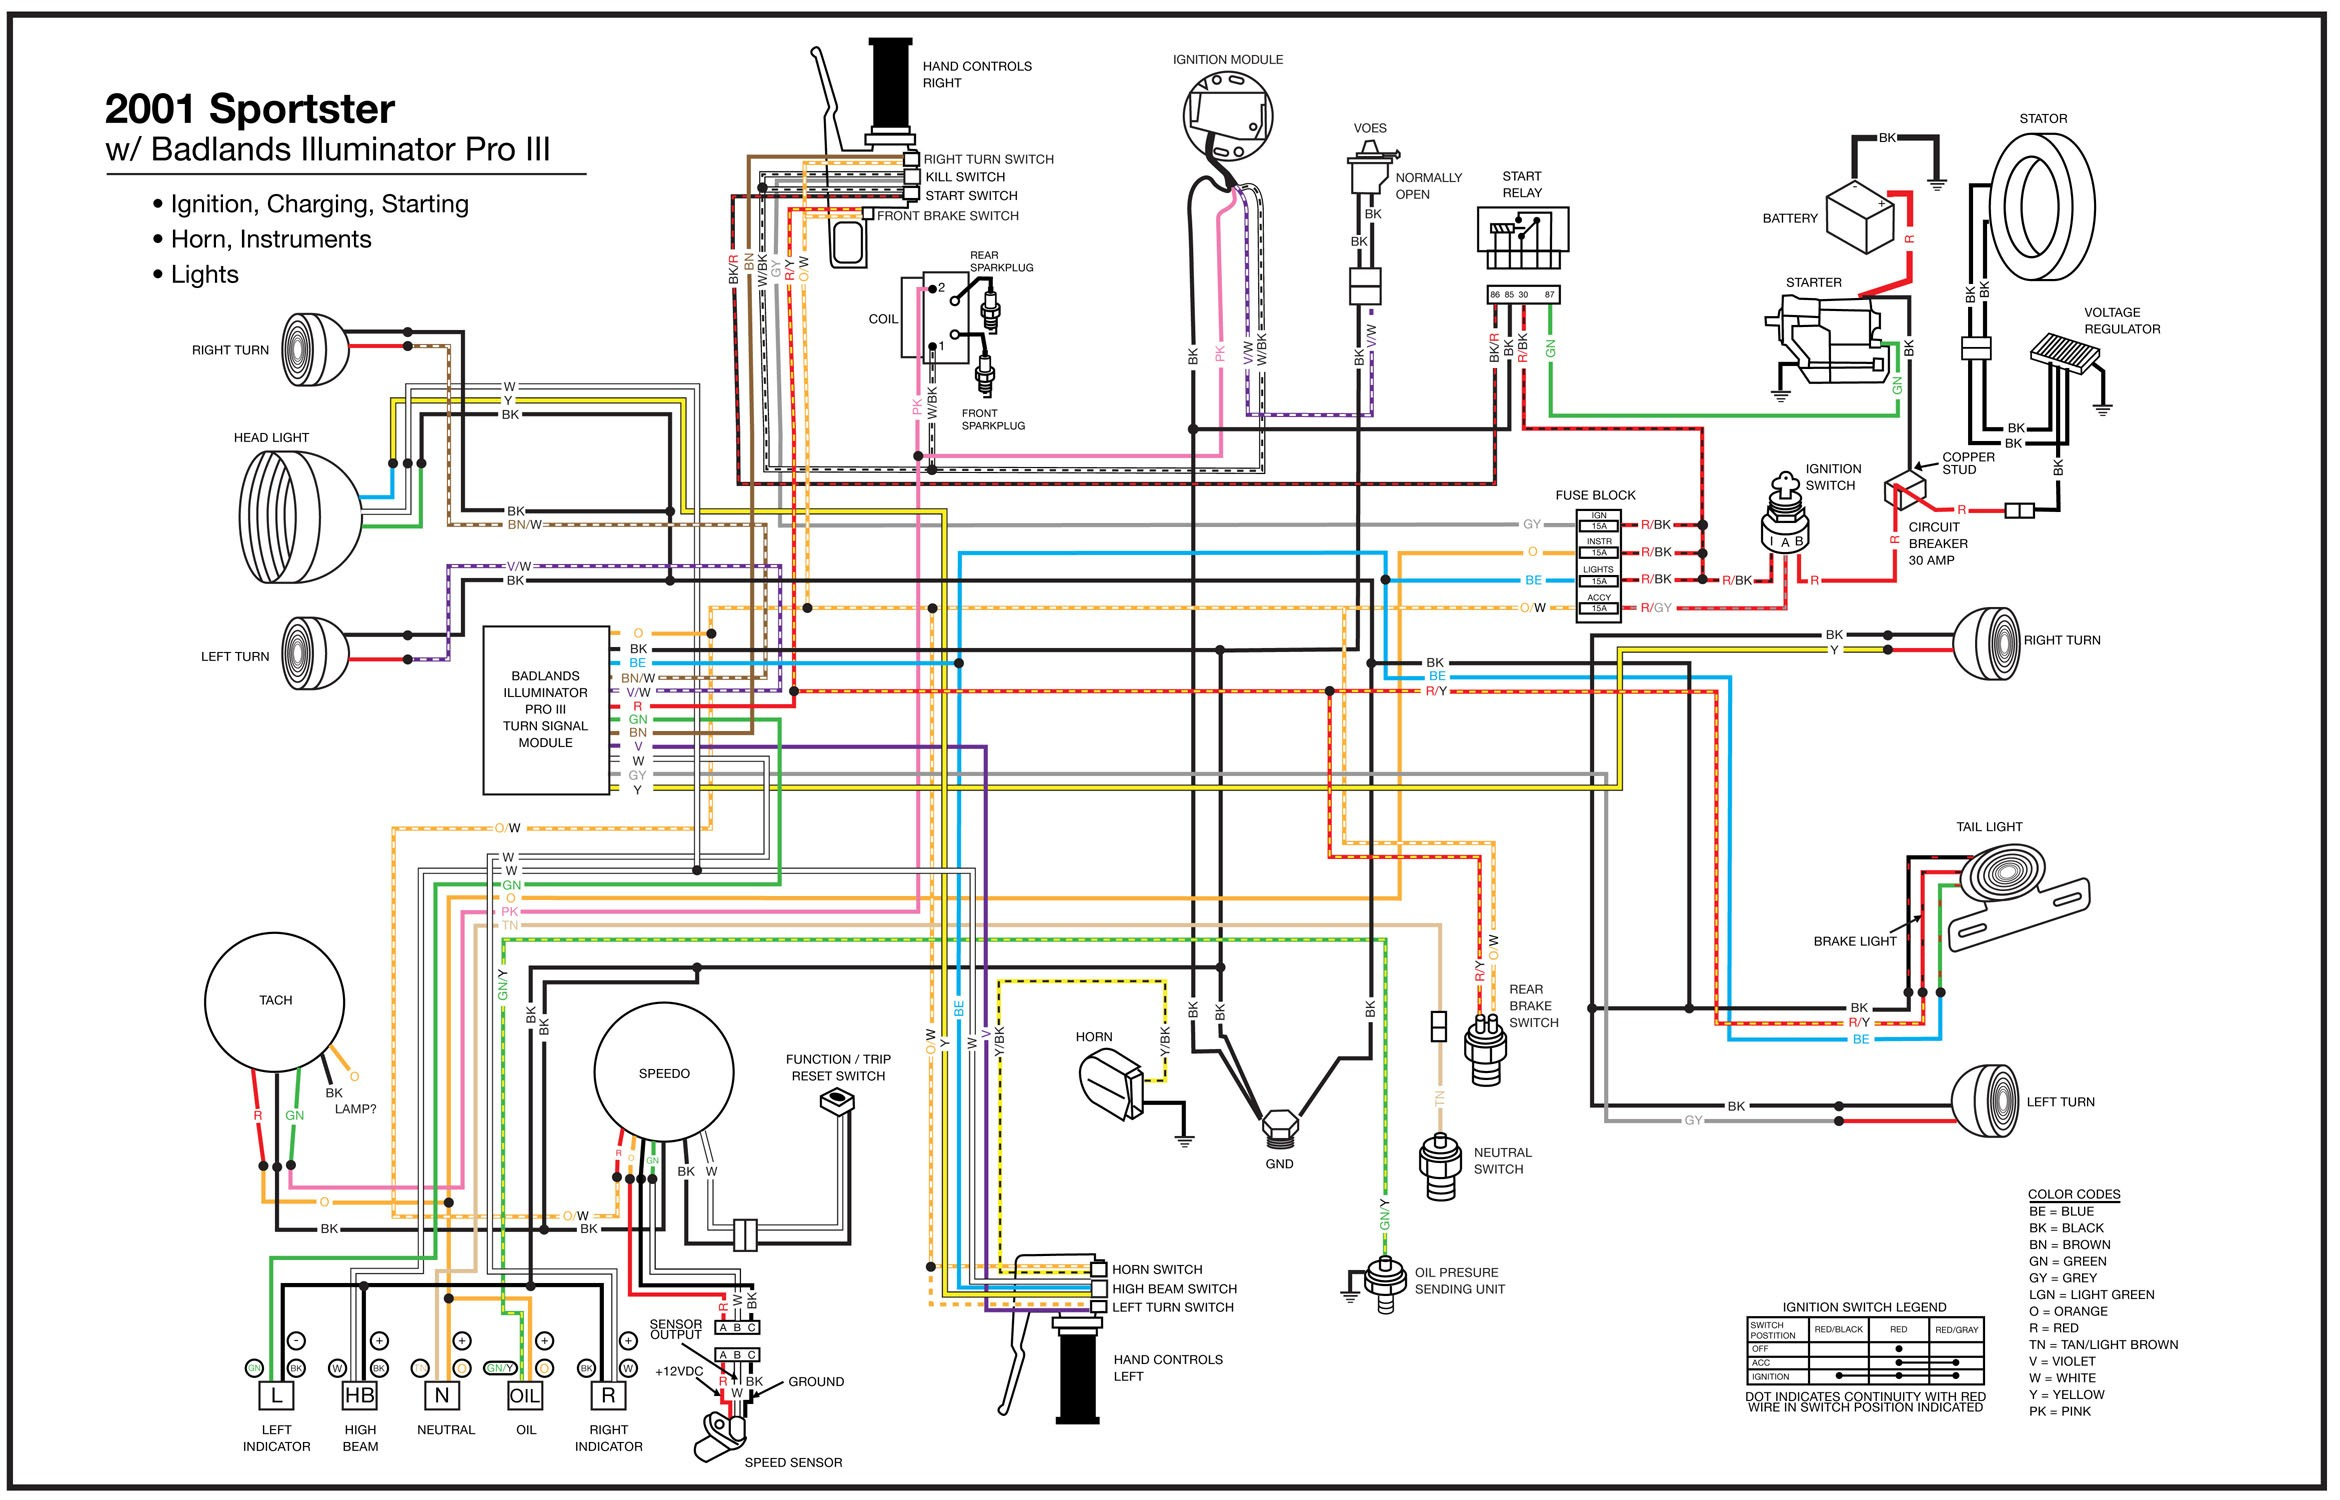 simple chopper wiring diagram harley wiring diagrams copy sch mas motorcycle wiring harley wiring diagrams copy sch mas lectrique des harley davidson this specific picture (simple chopper